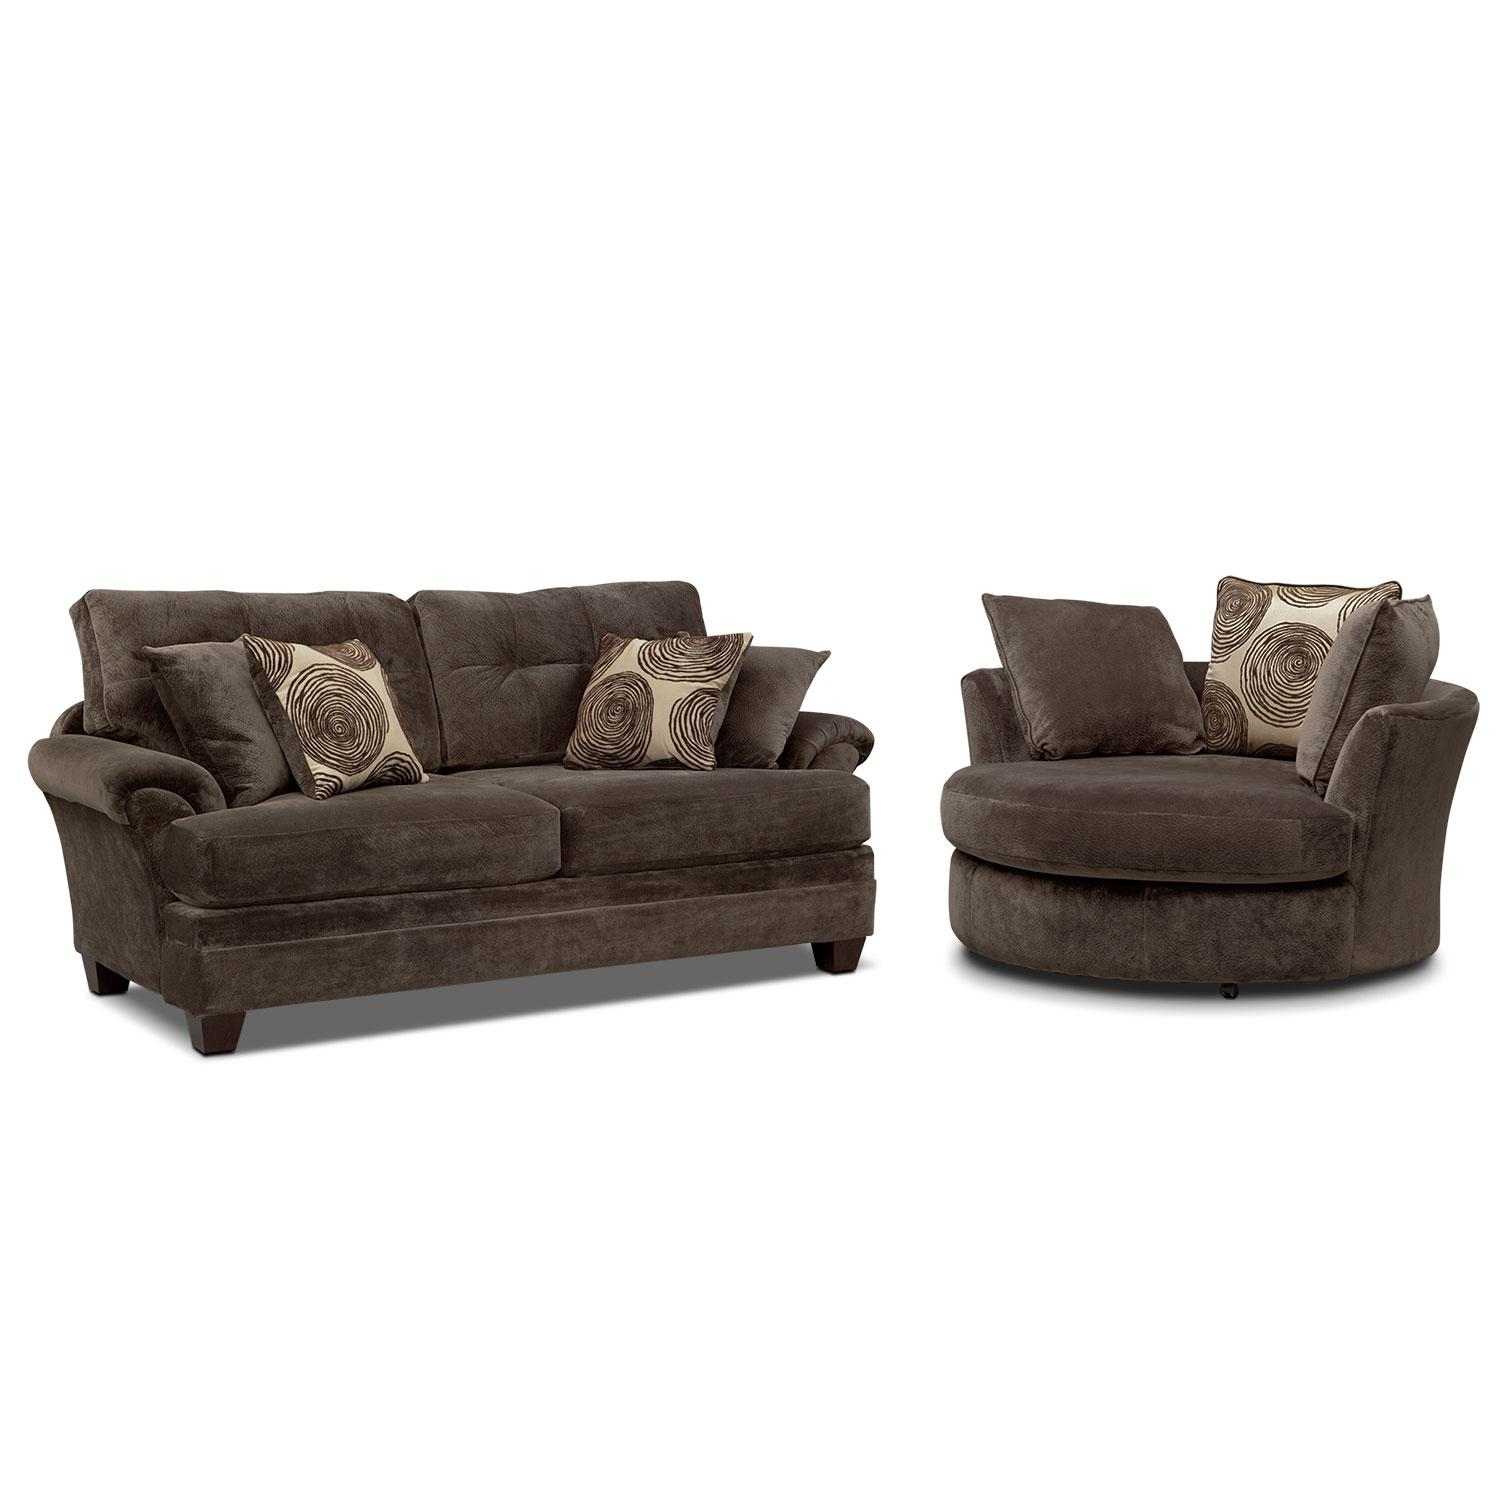 Cordelle Swivel Chair – Chocolate | Value City Furniture For Swivel Sofa Chairs (View 15 of 20)